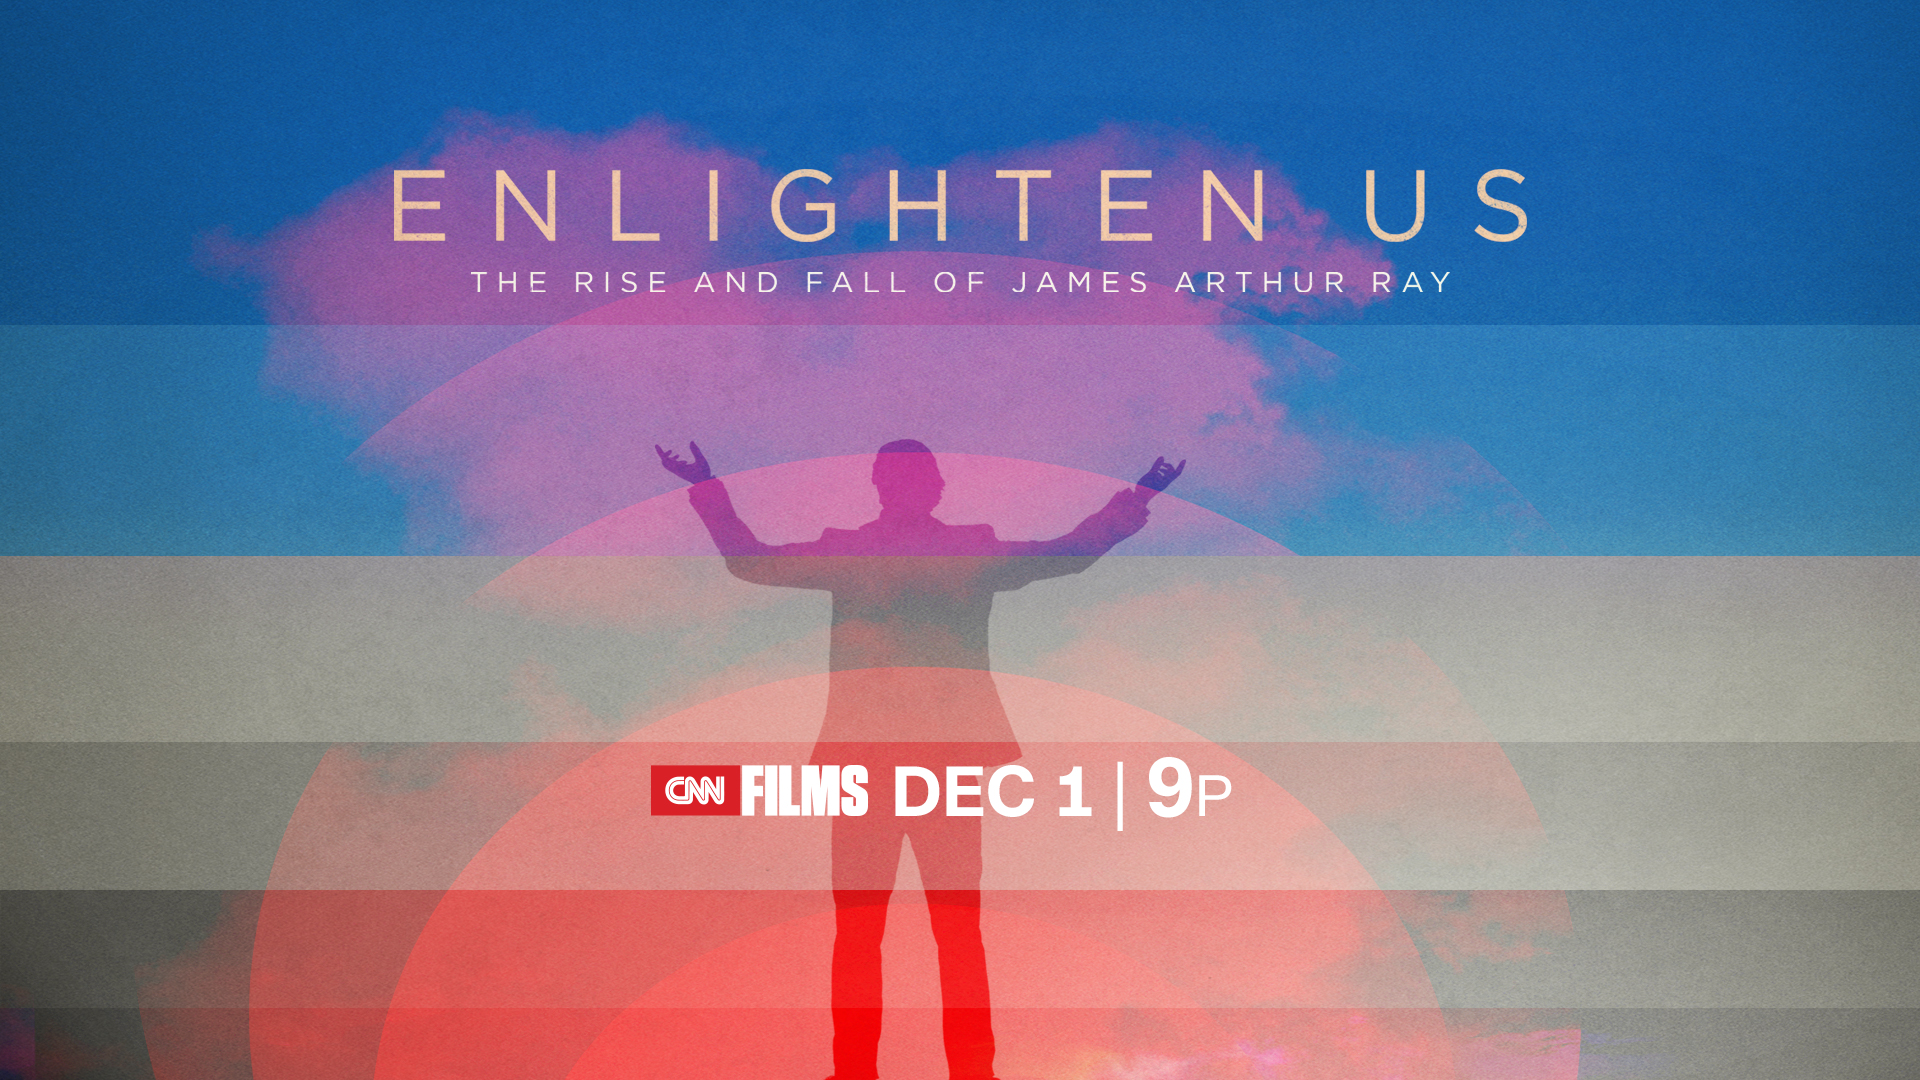 ENLIGHTEN US: The Rise and Fall of James Arthur Ray Debuts as CNN Films in December